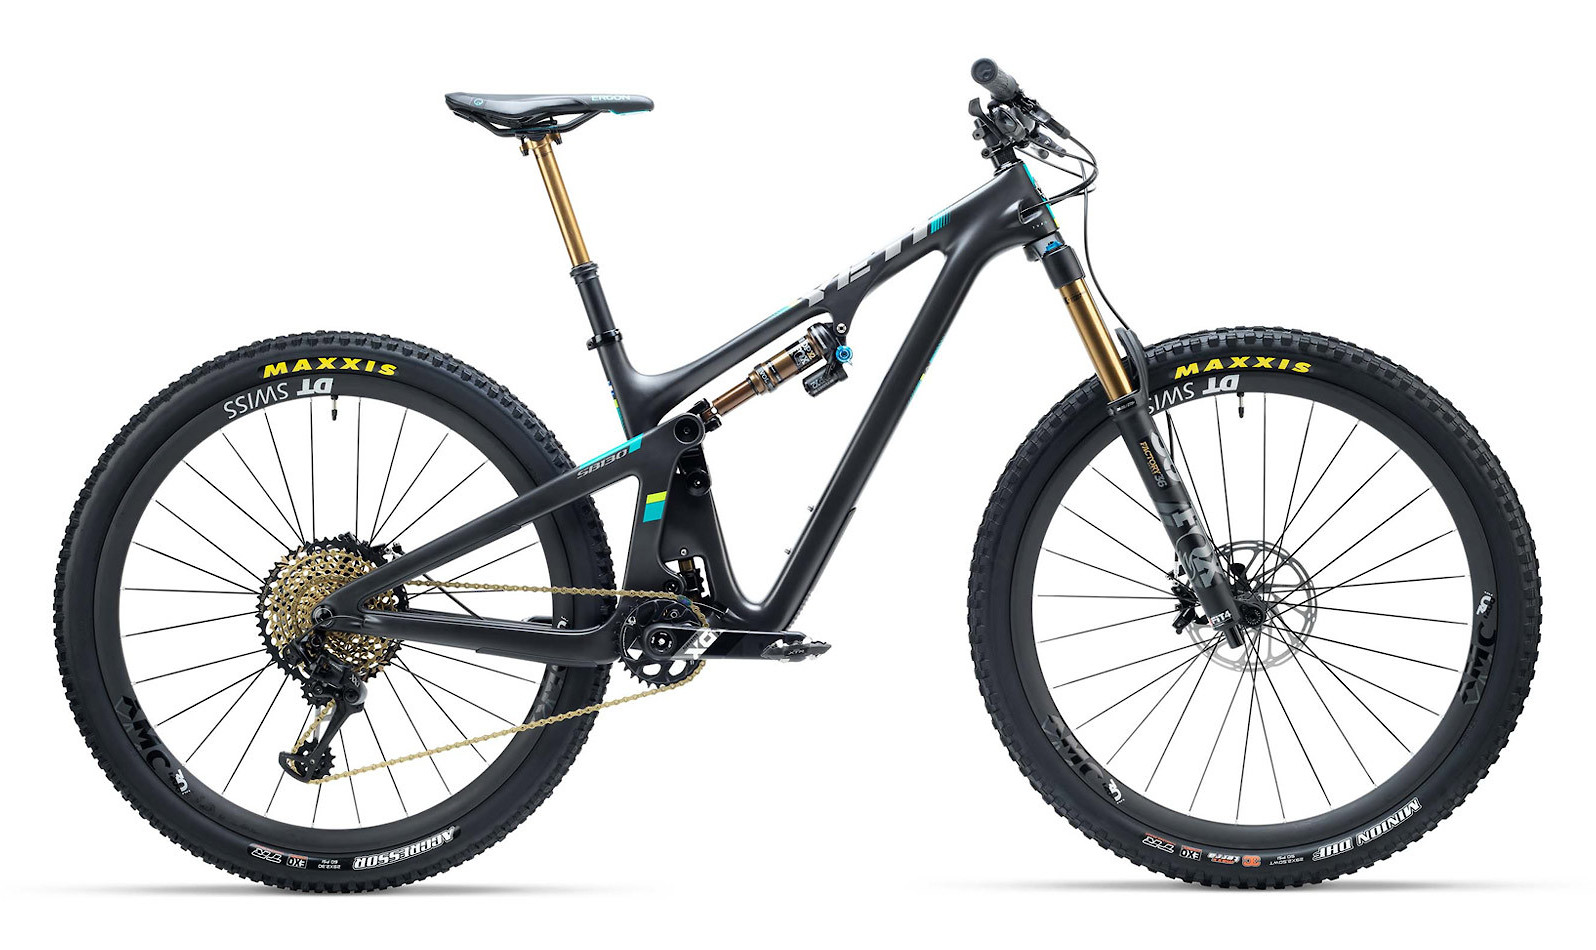 2019 Yeti SB130 Black - Shown with XX1 kit